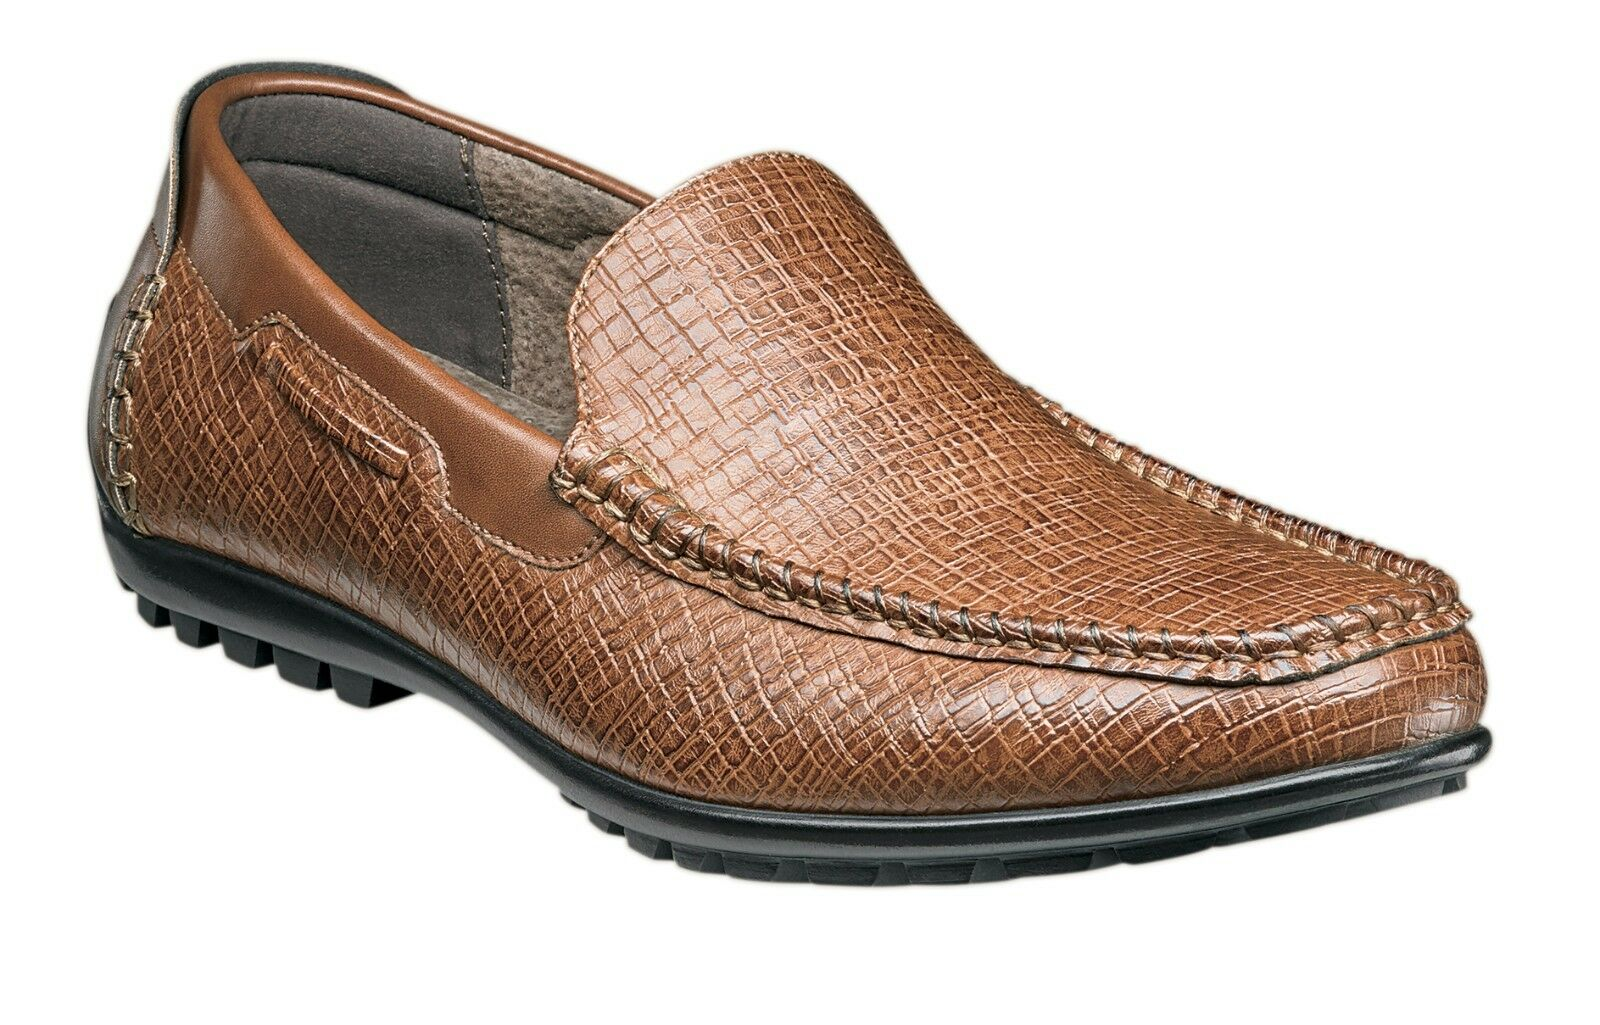 Stacy Adams Men's Kian Moc Toe Slip on Driver Driving Style Loafer - Tan